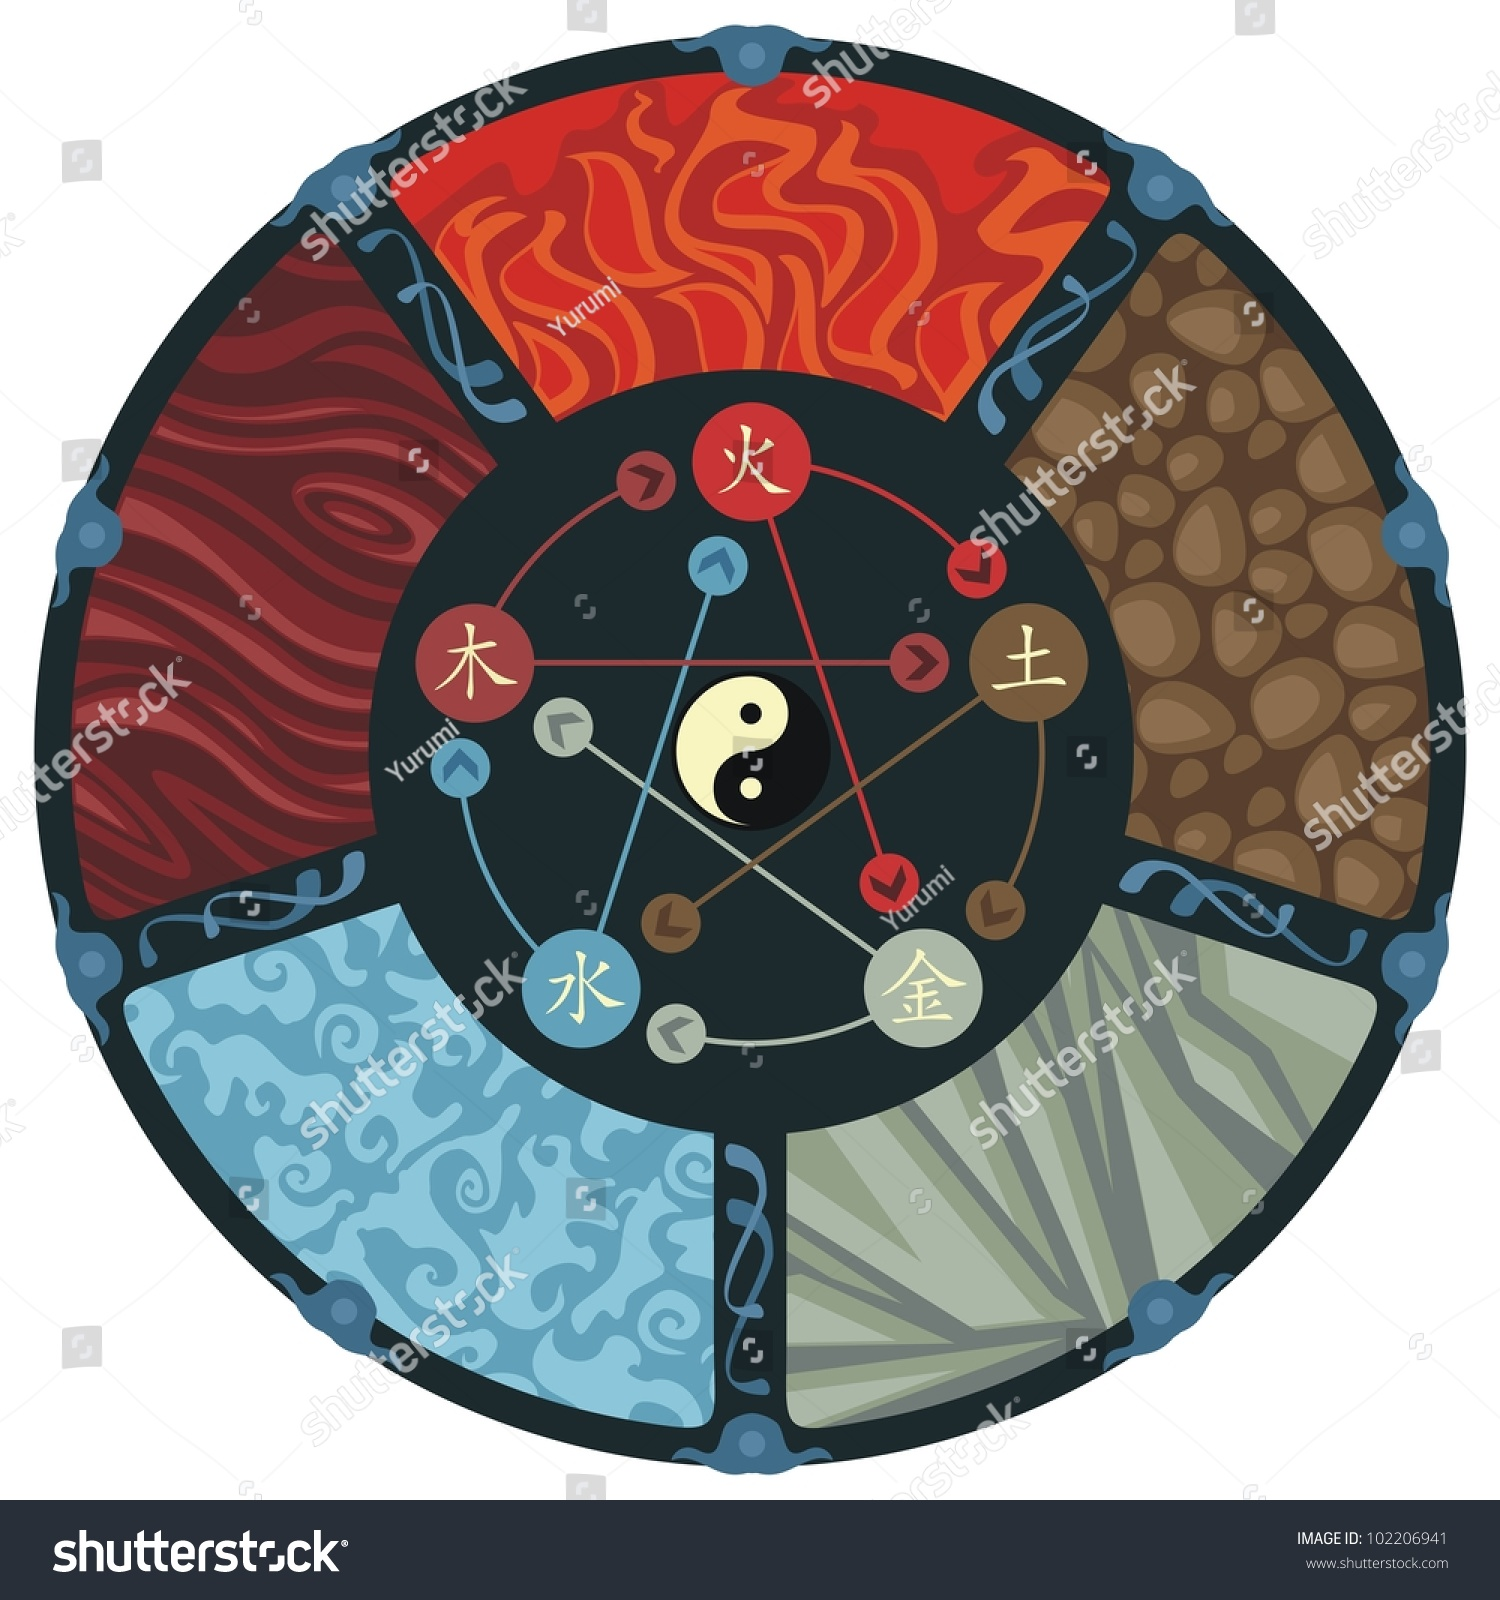 Decorative Illustration Of The Five Elements Cycle